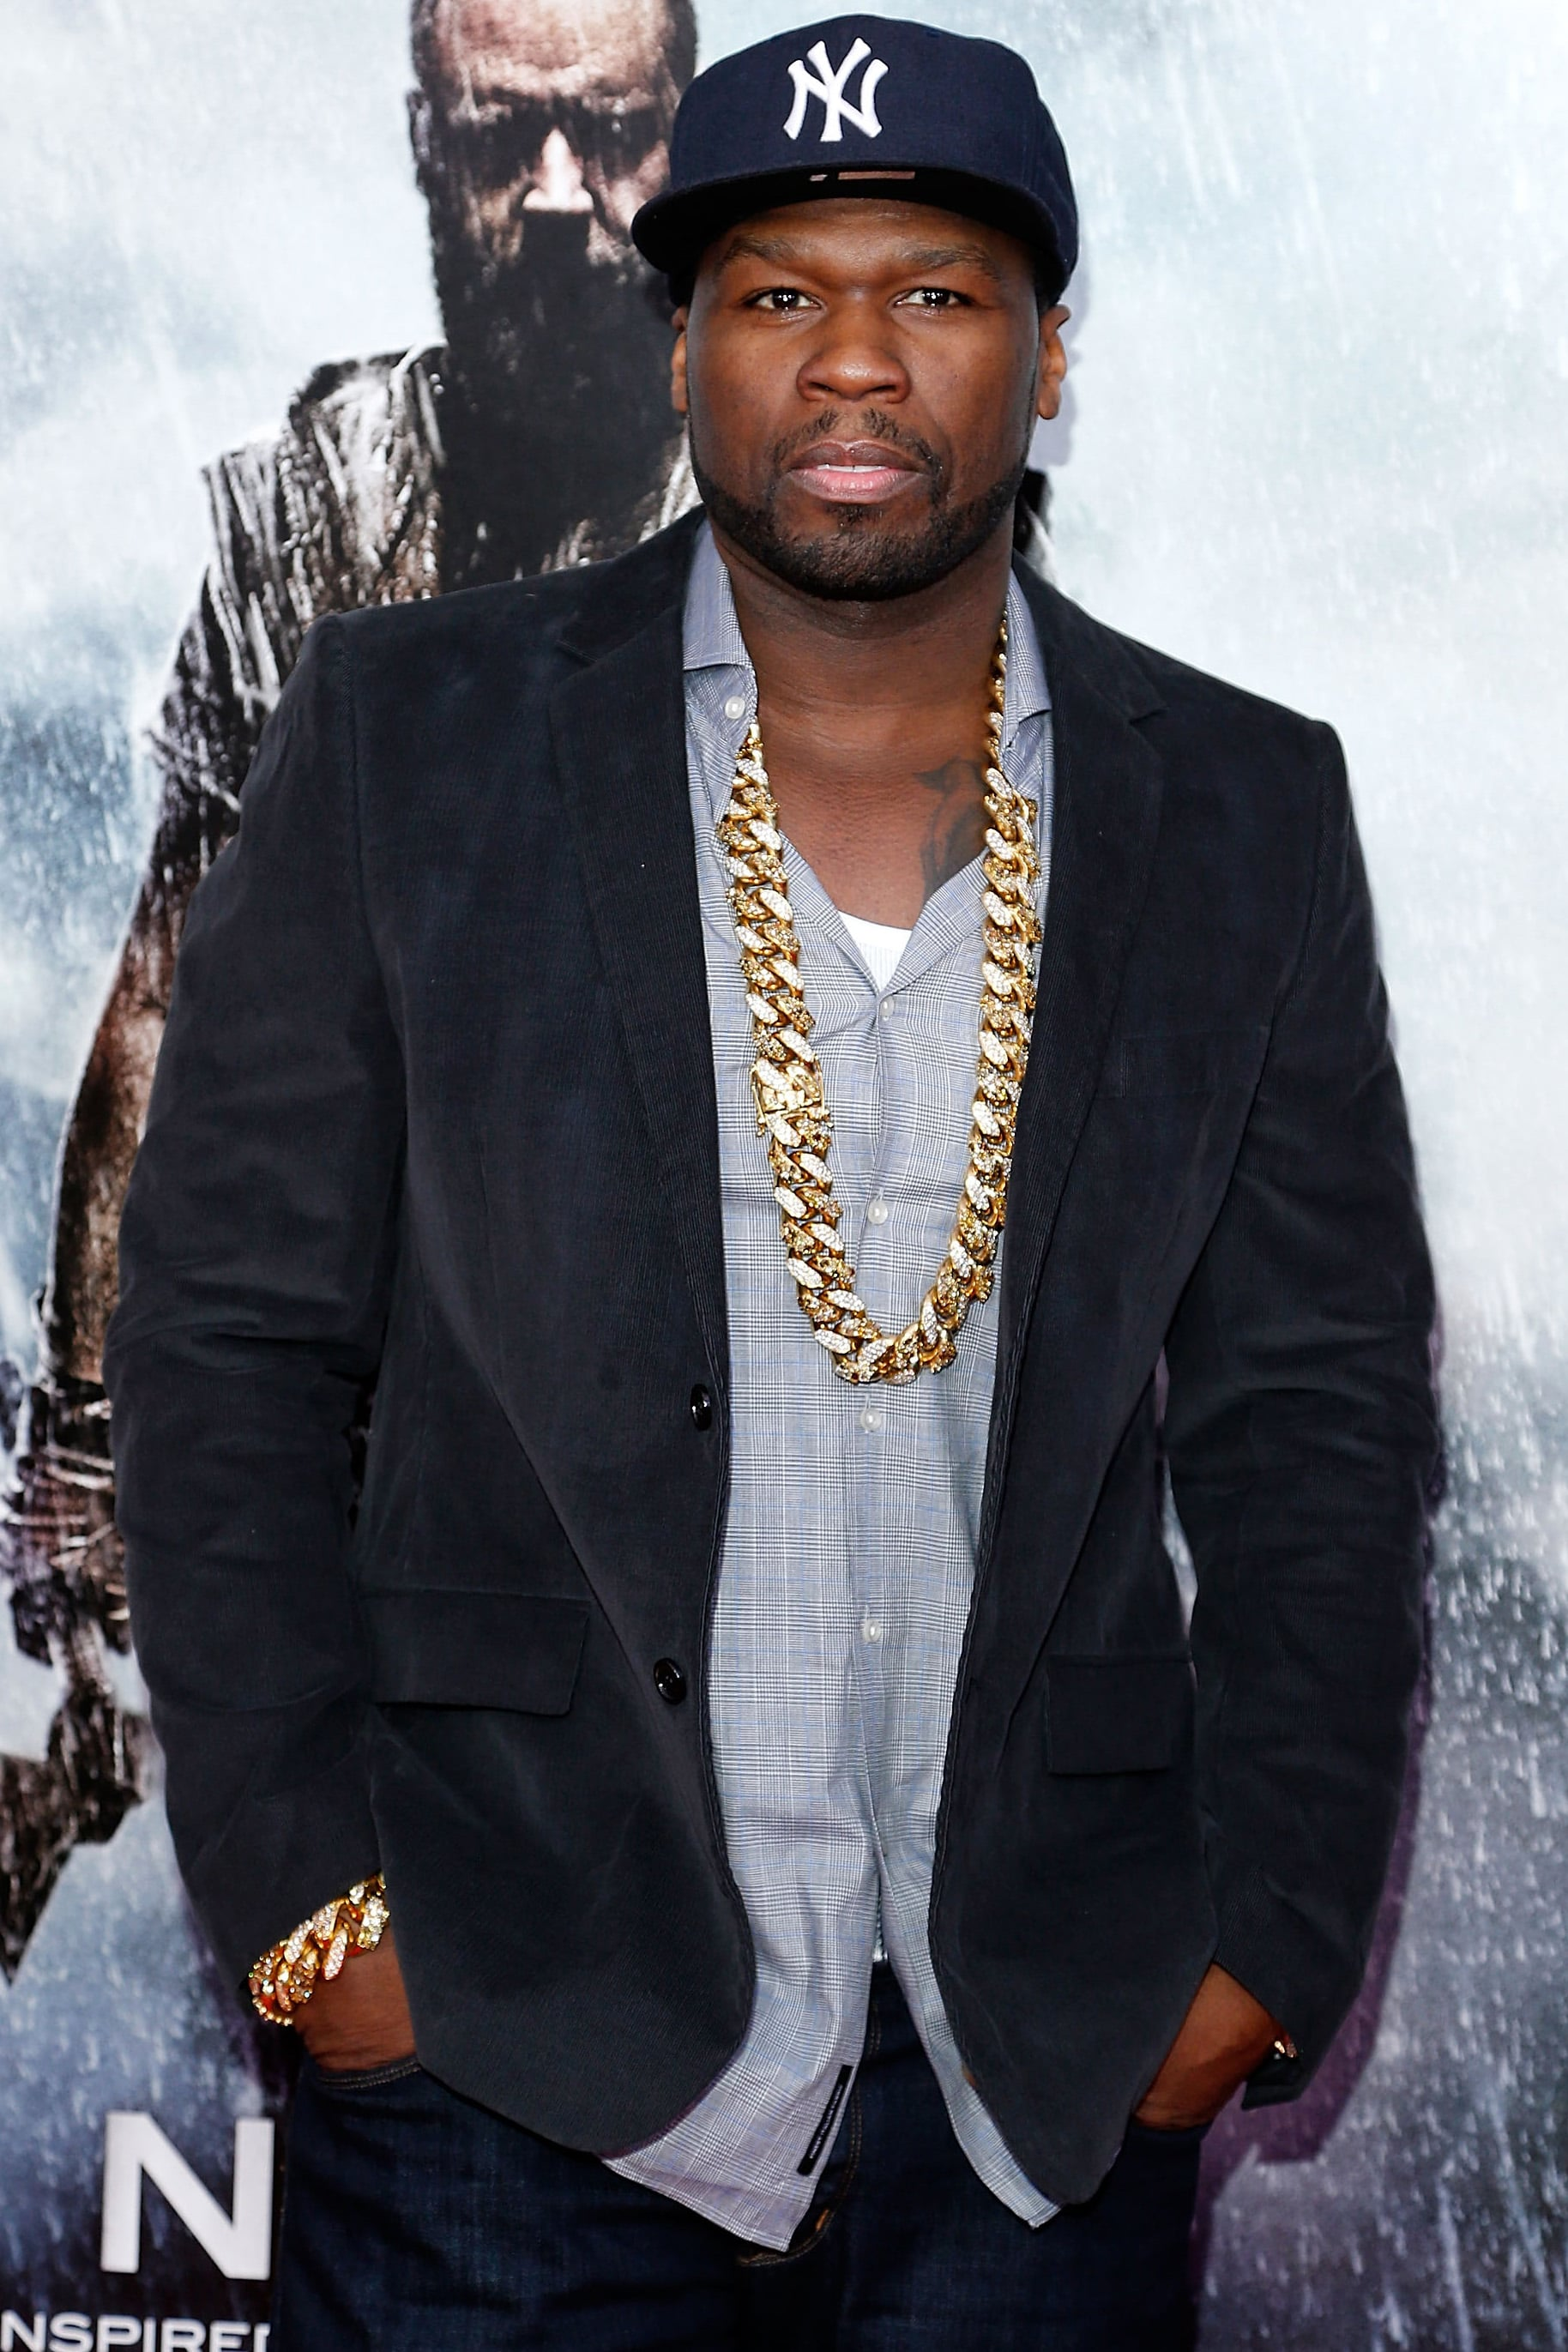 """Curtis """"50 Cent"""" Jackson joined Spy, Paul Feig's upcoming comedy starring Melissa McCarthy, Jason Statham, Jude Law, and Rose Byrne."""